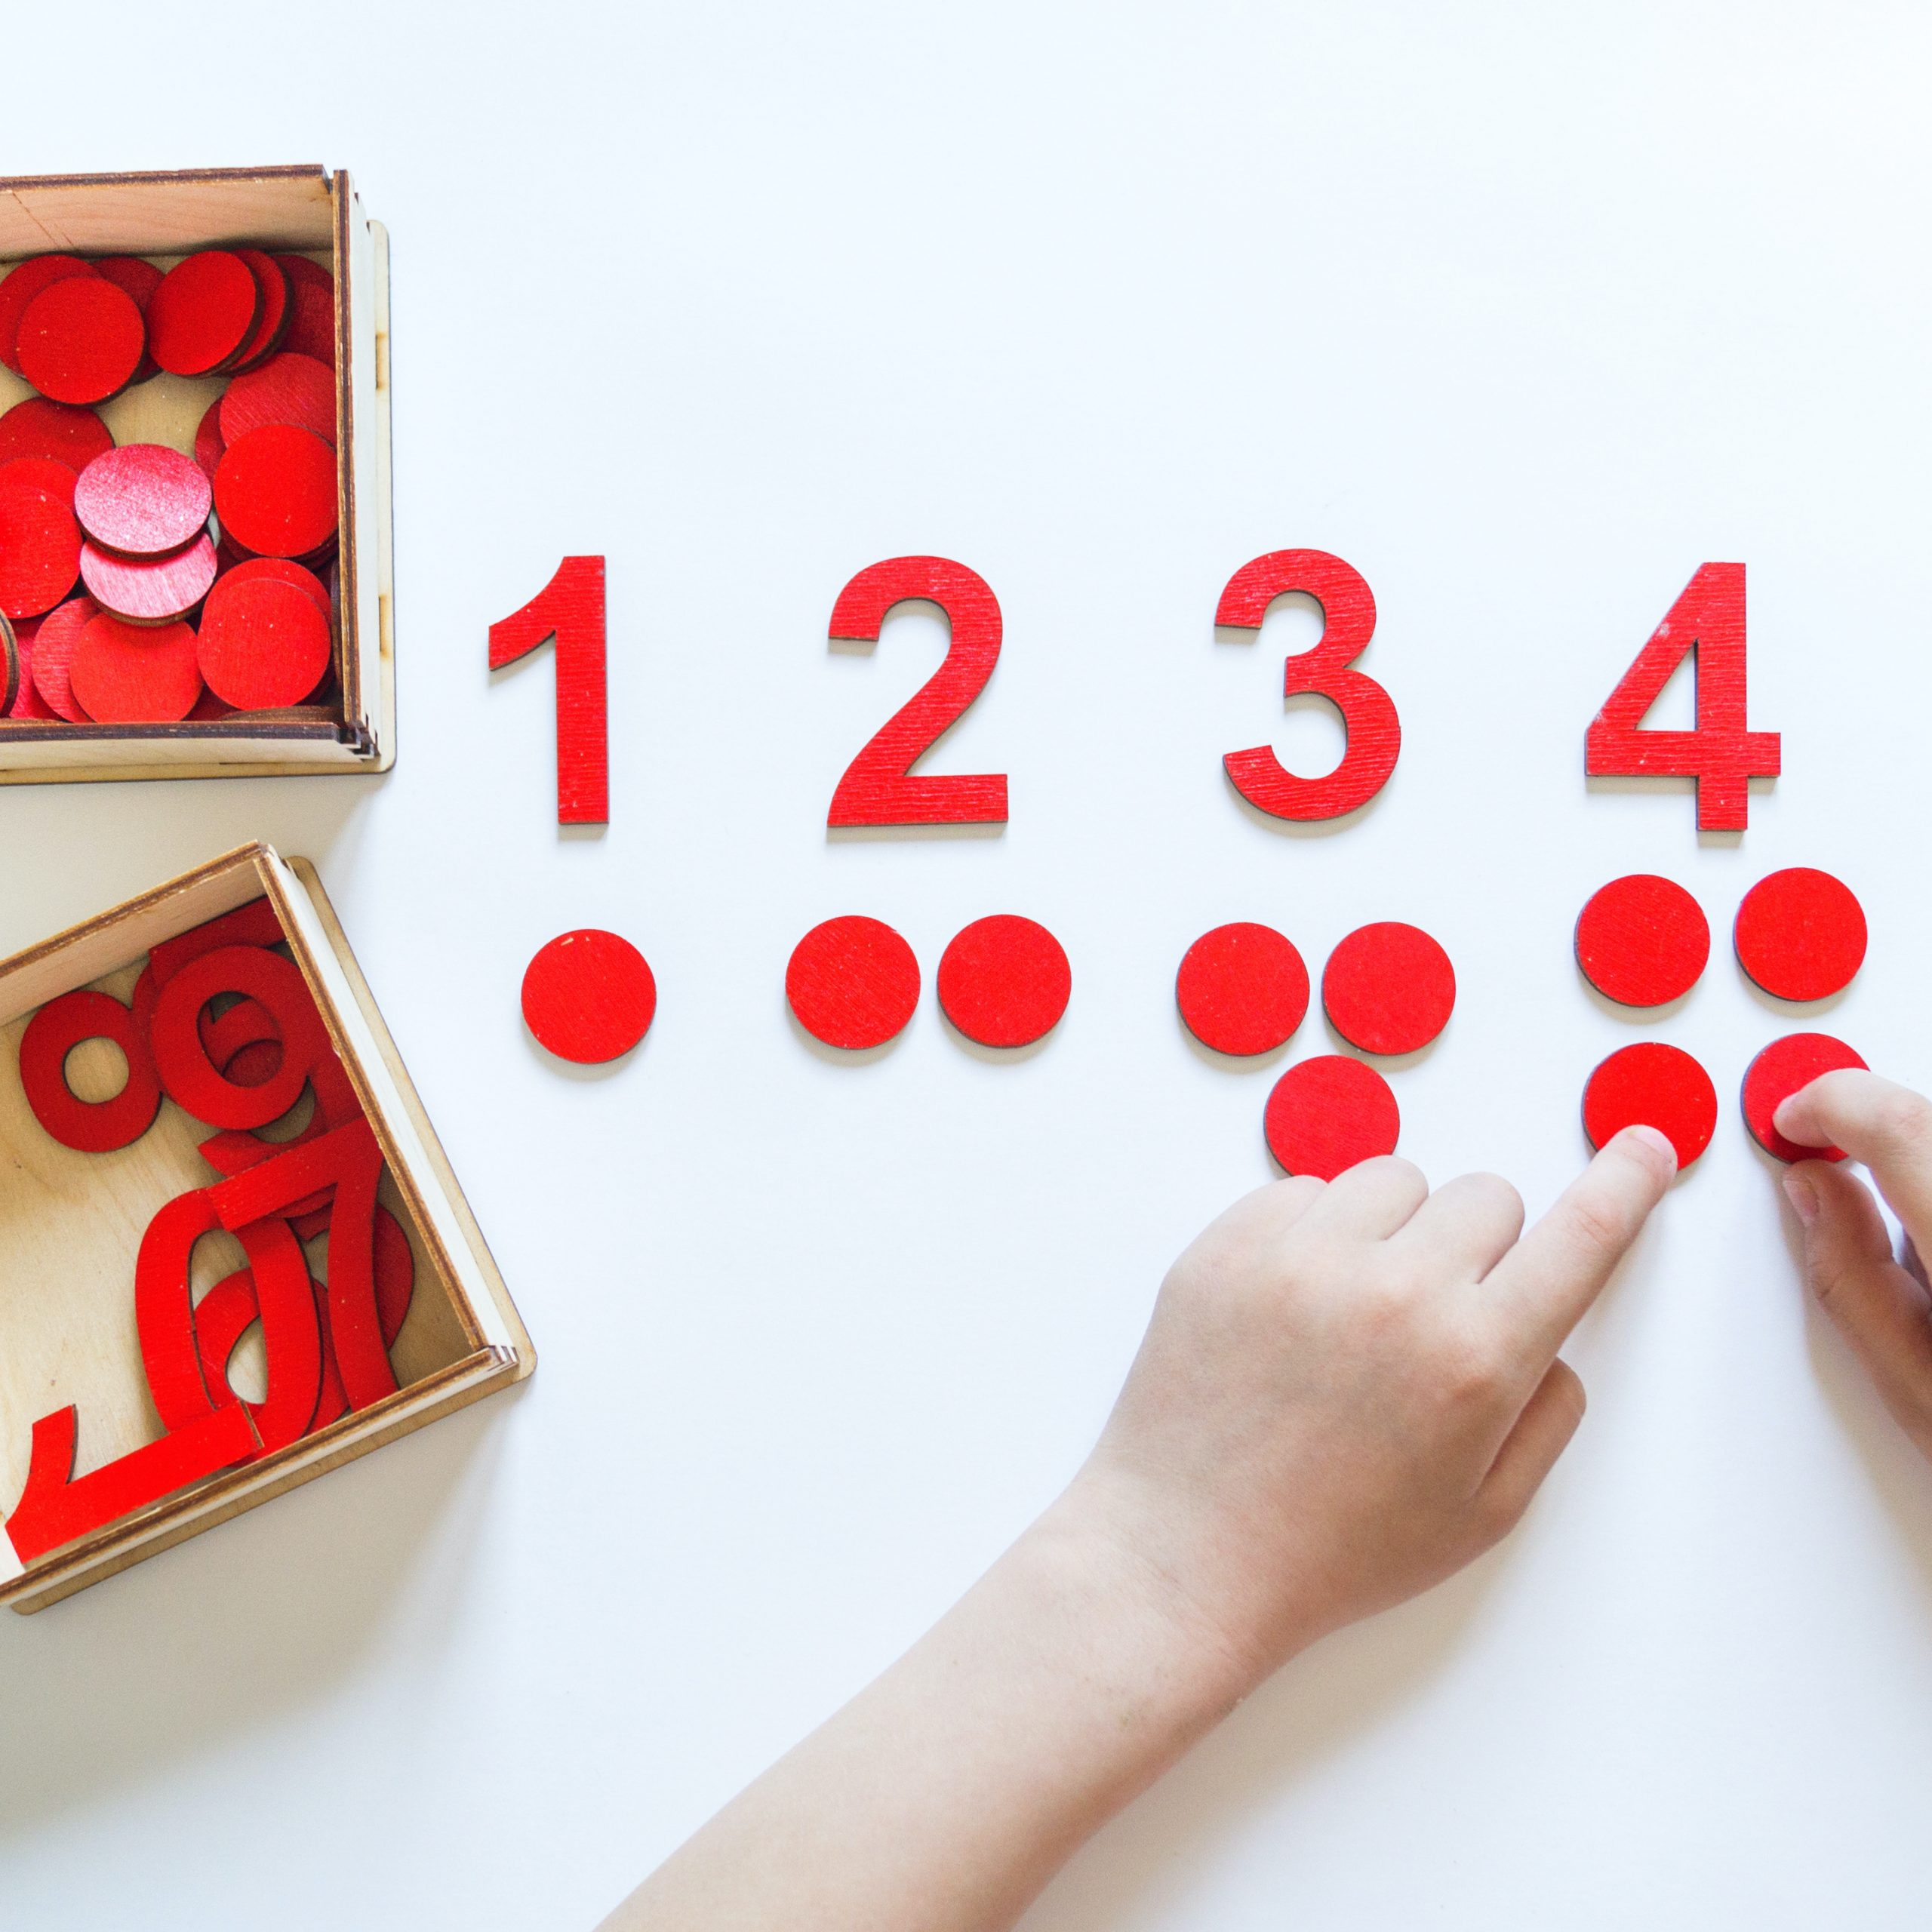 Math Games for Kids | Great for Practicing Basic Math Skills